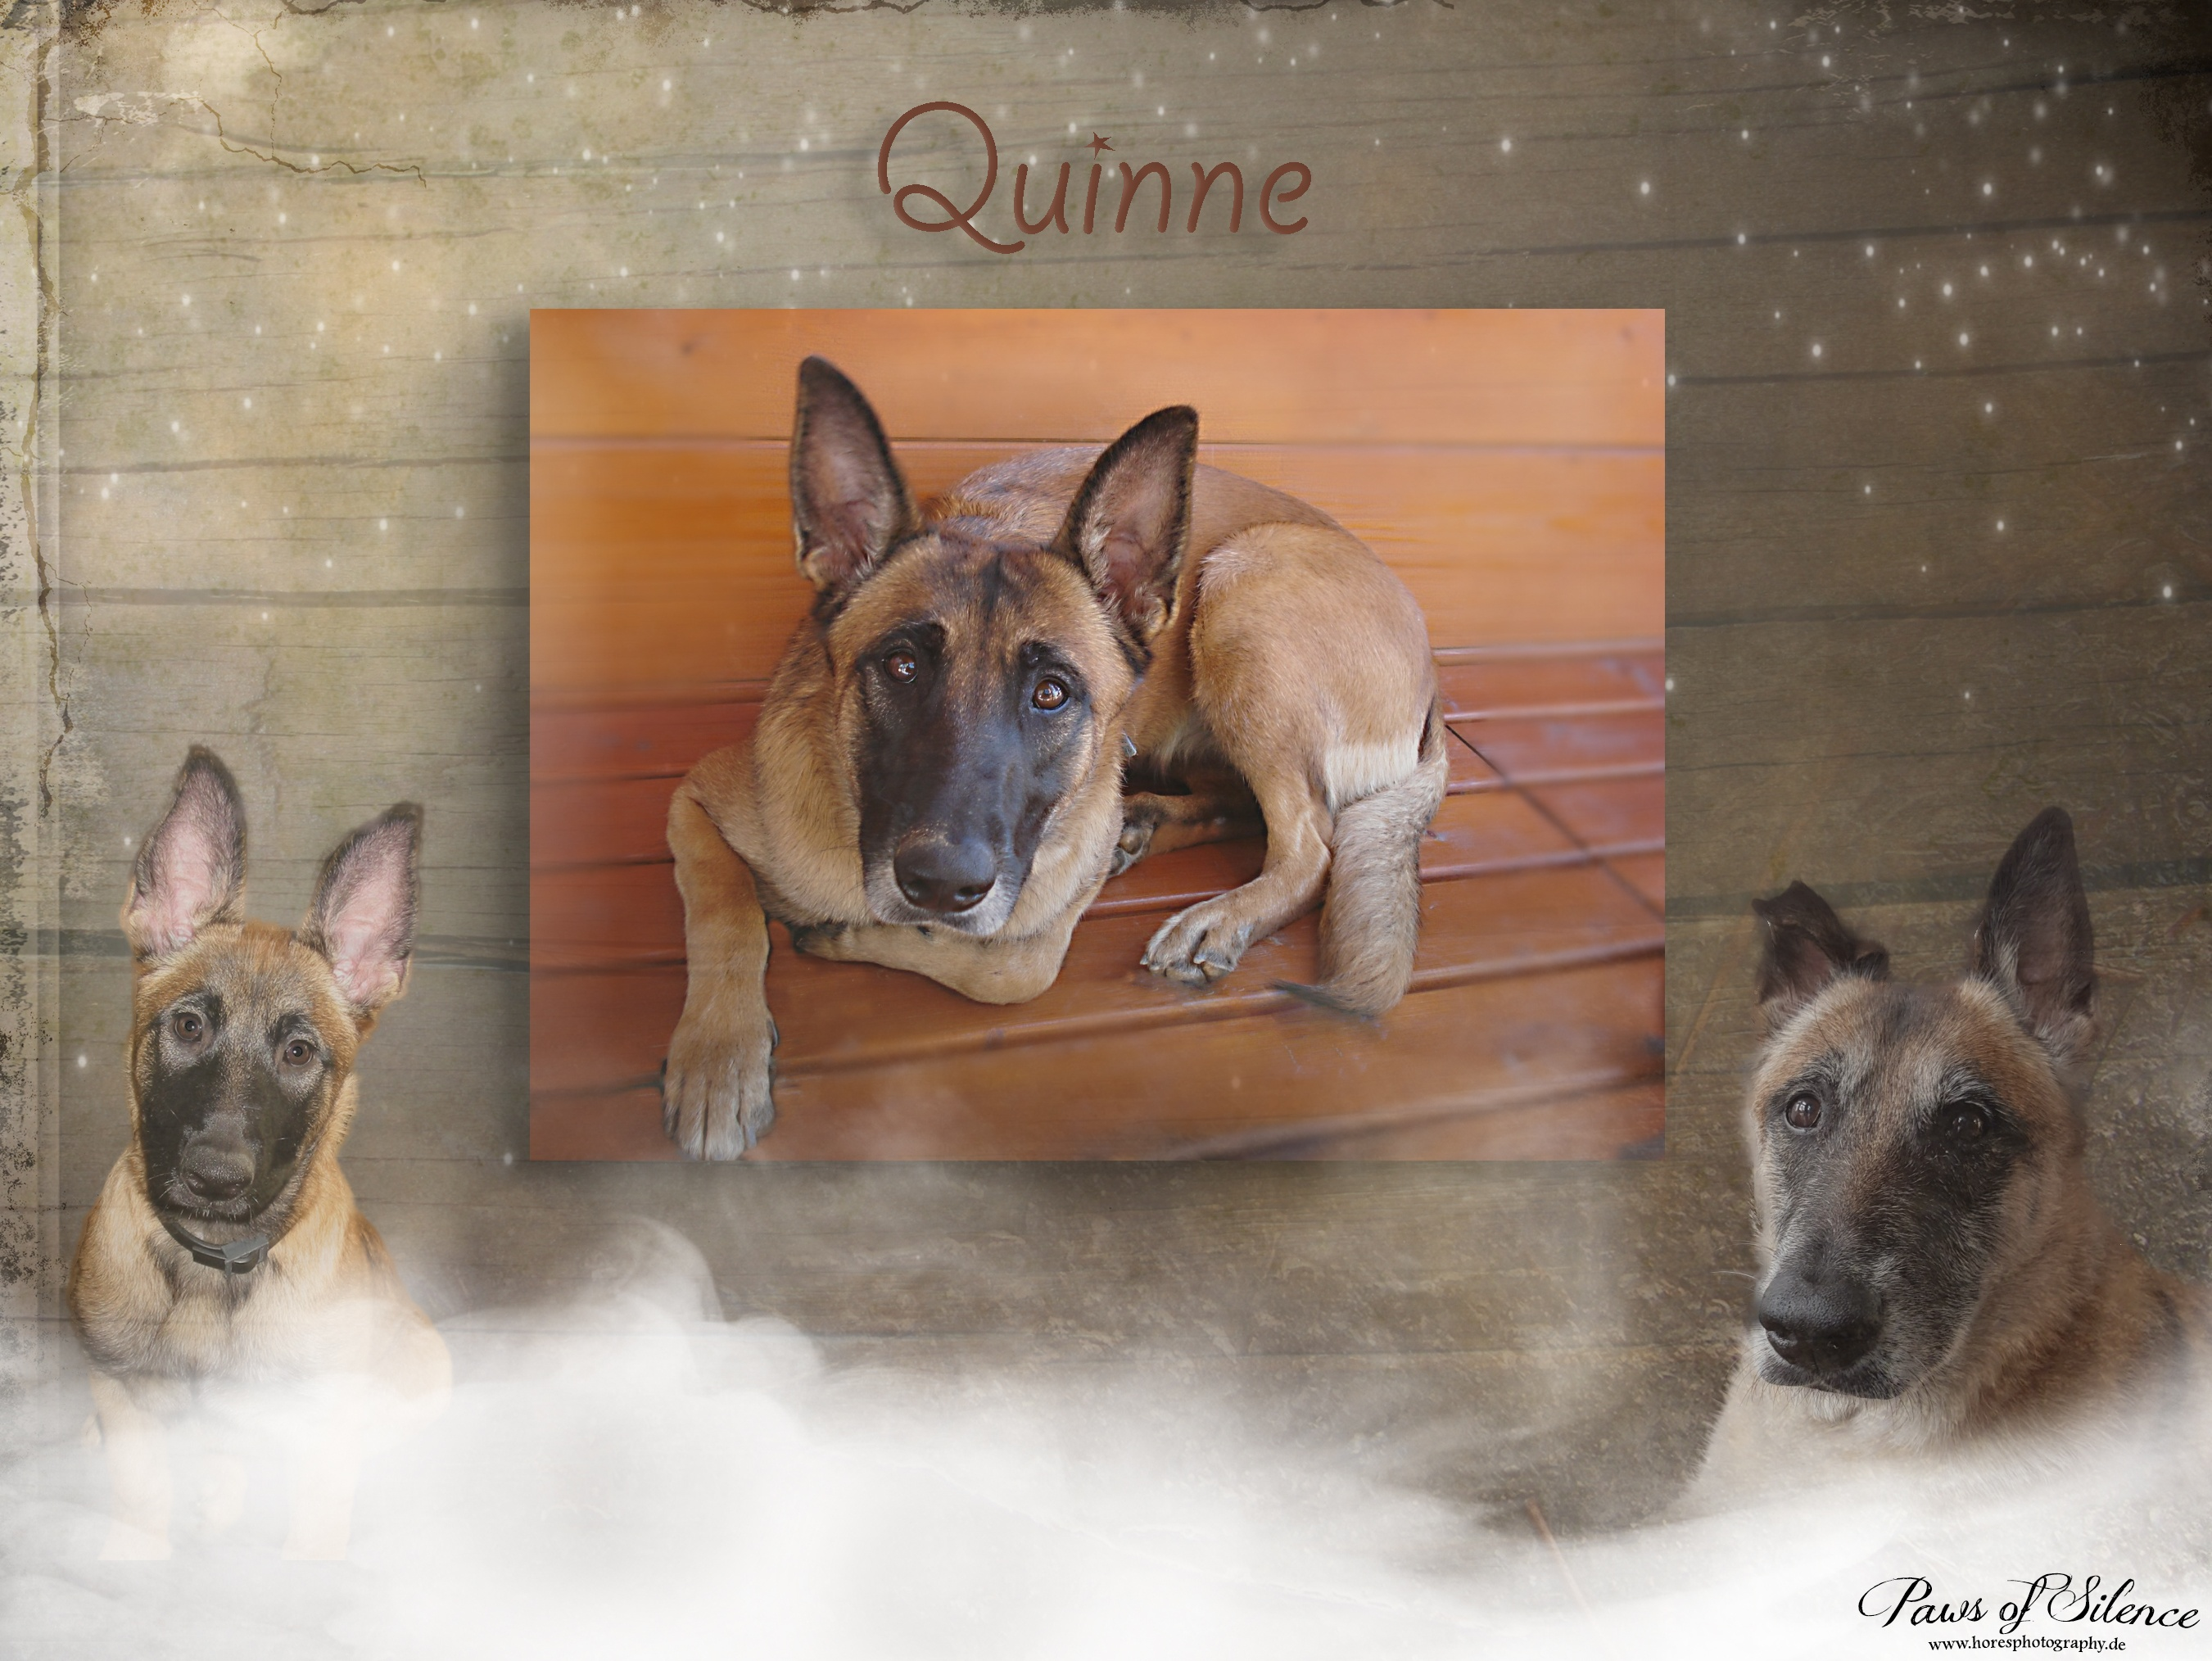 Paws of Silence77-7155quinne collage.jpg799